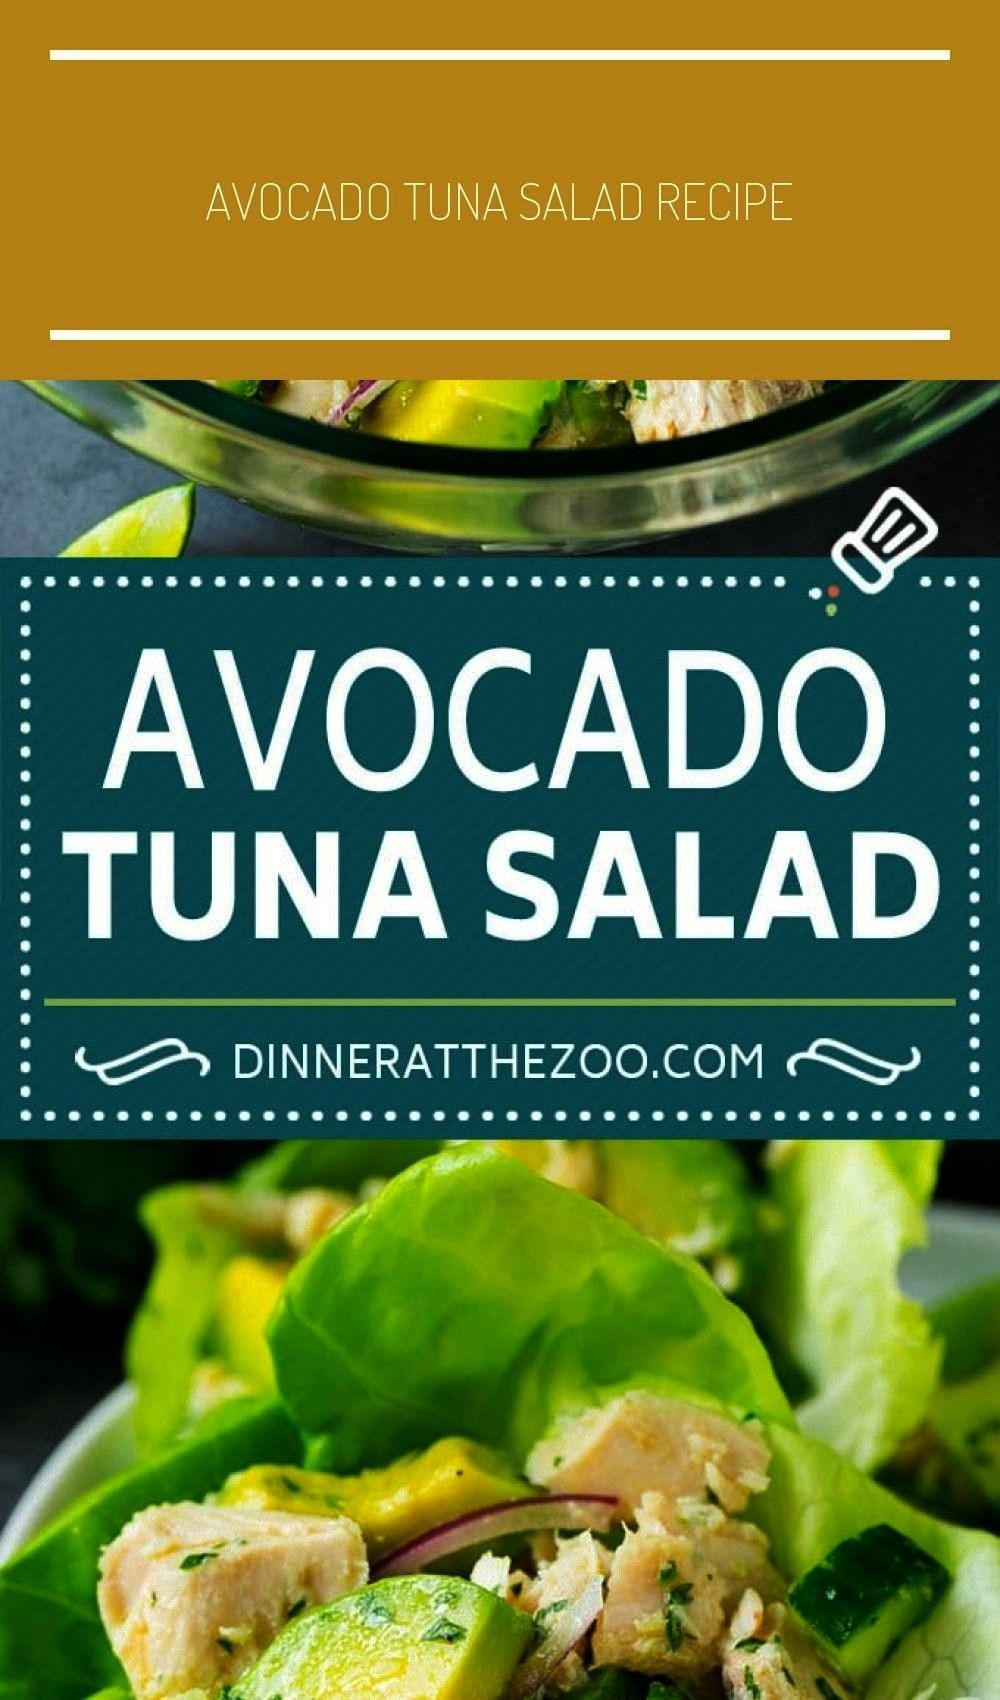 Salad Recipe | Avocado Salad - Dinner at the Zoo Recipes - salad salmonAvocado Tuna Salad Recipe |